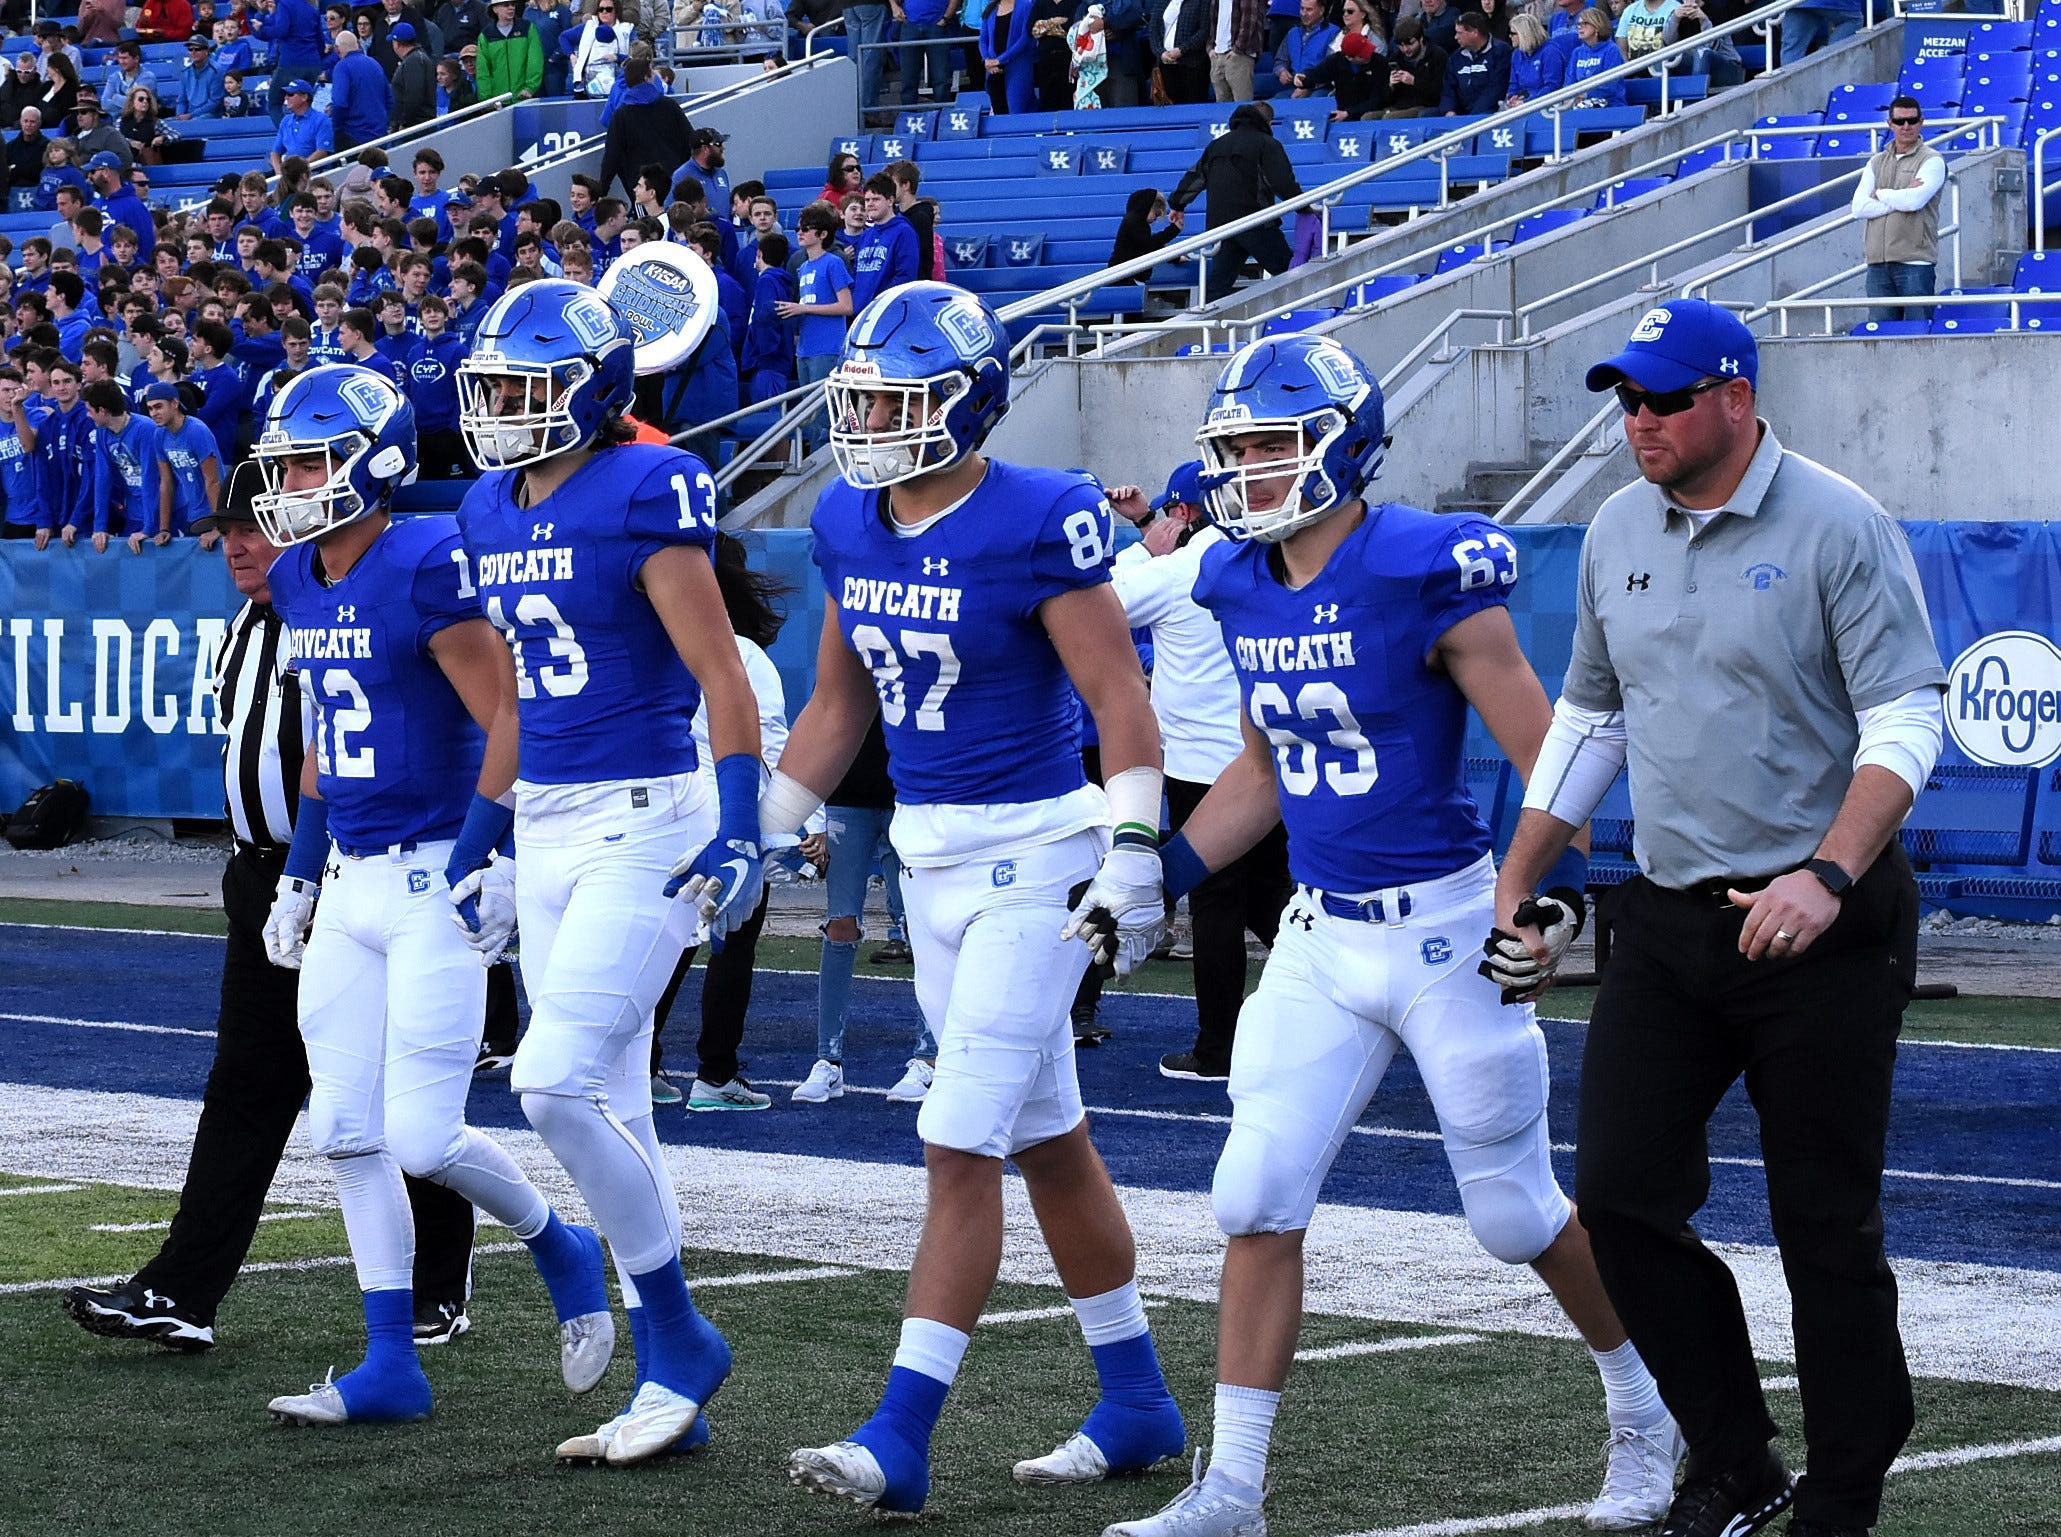 Captains from Covington Catholic head to mid field for the coin toss in the 2018 KHSAA 5A State Football Championship, December 2, 2018.